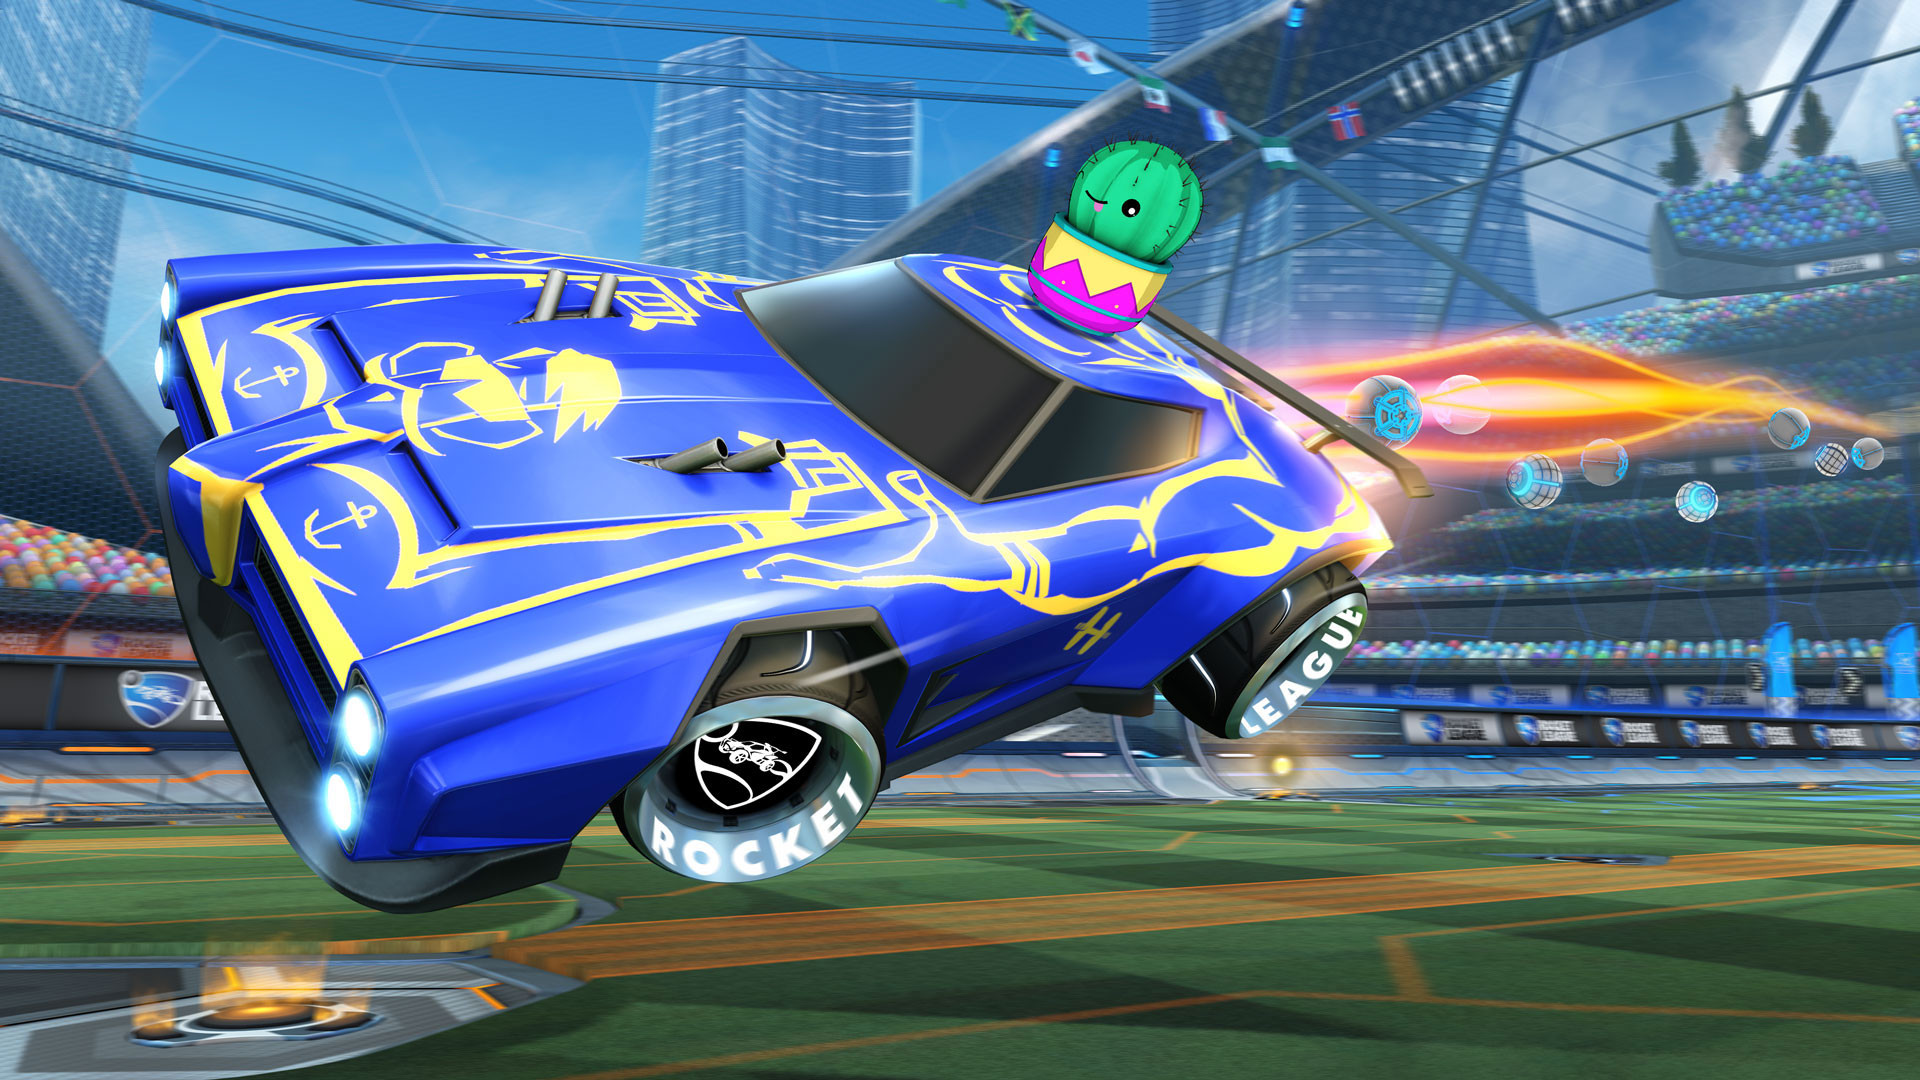 Find the best gaming PC for Rocket League®